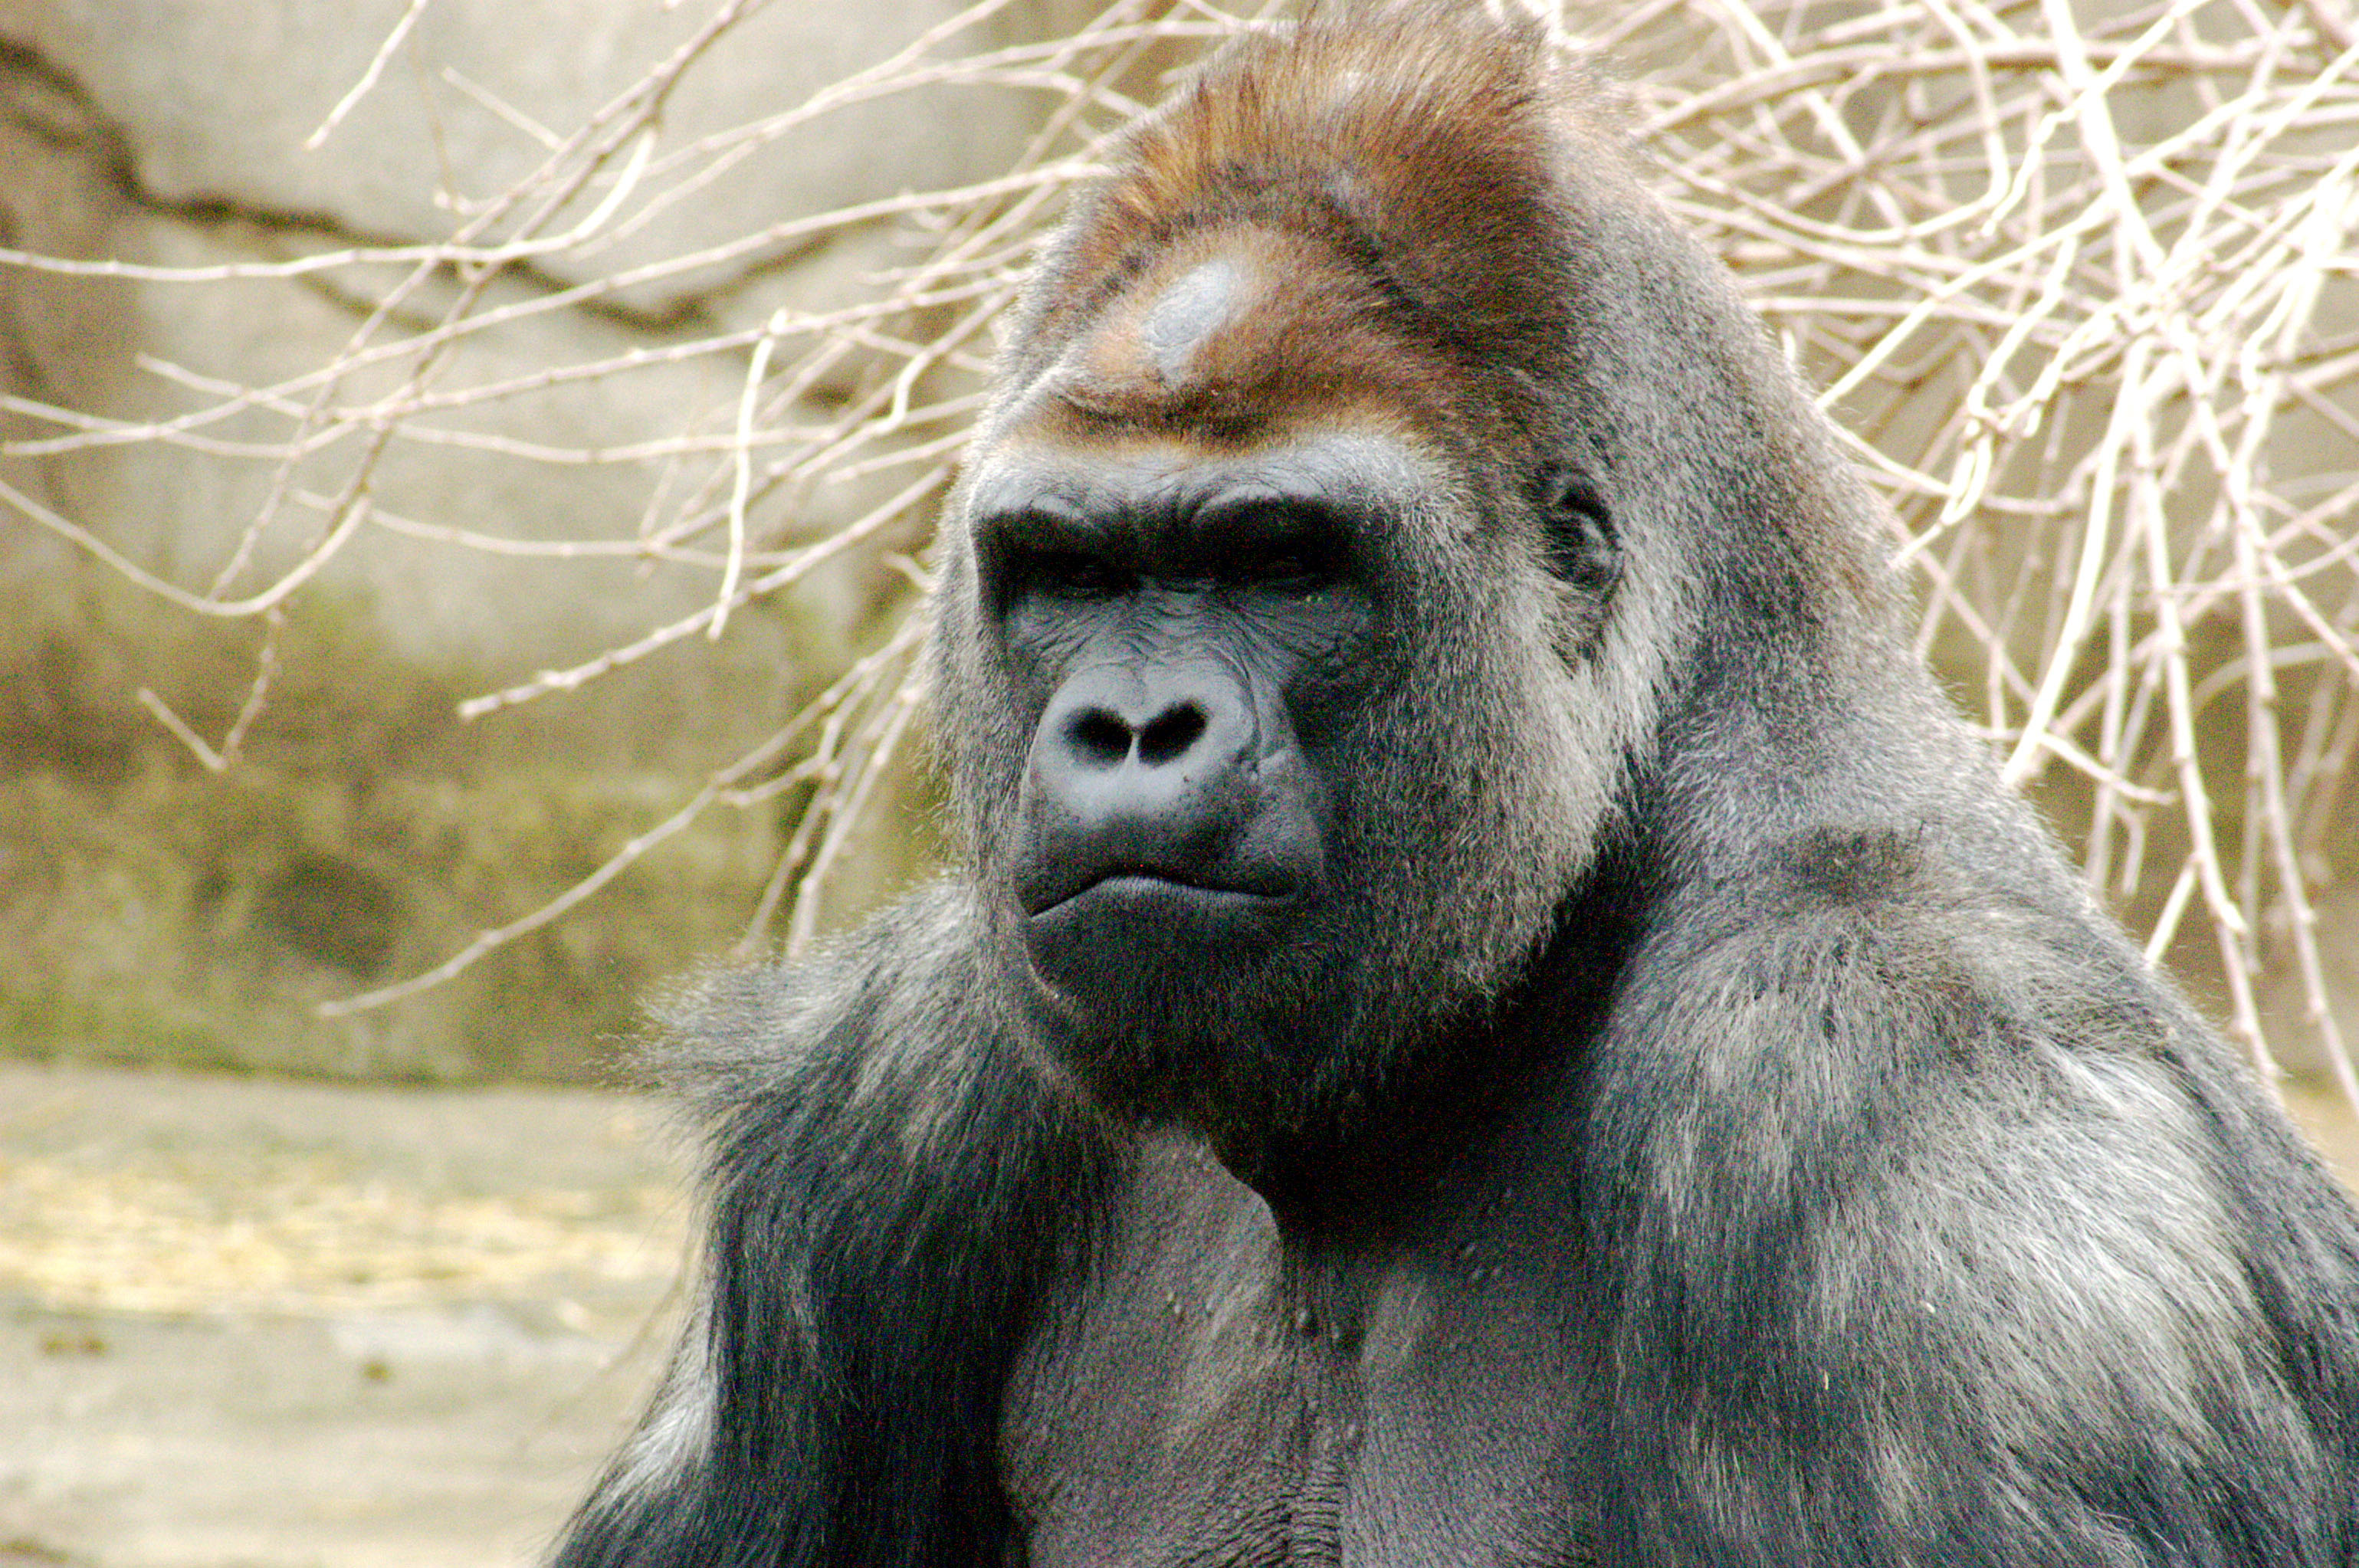 What have we got in common with a gorilla?